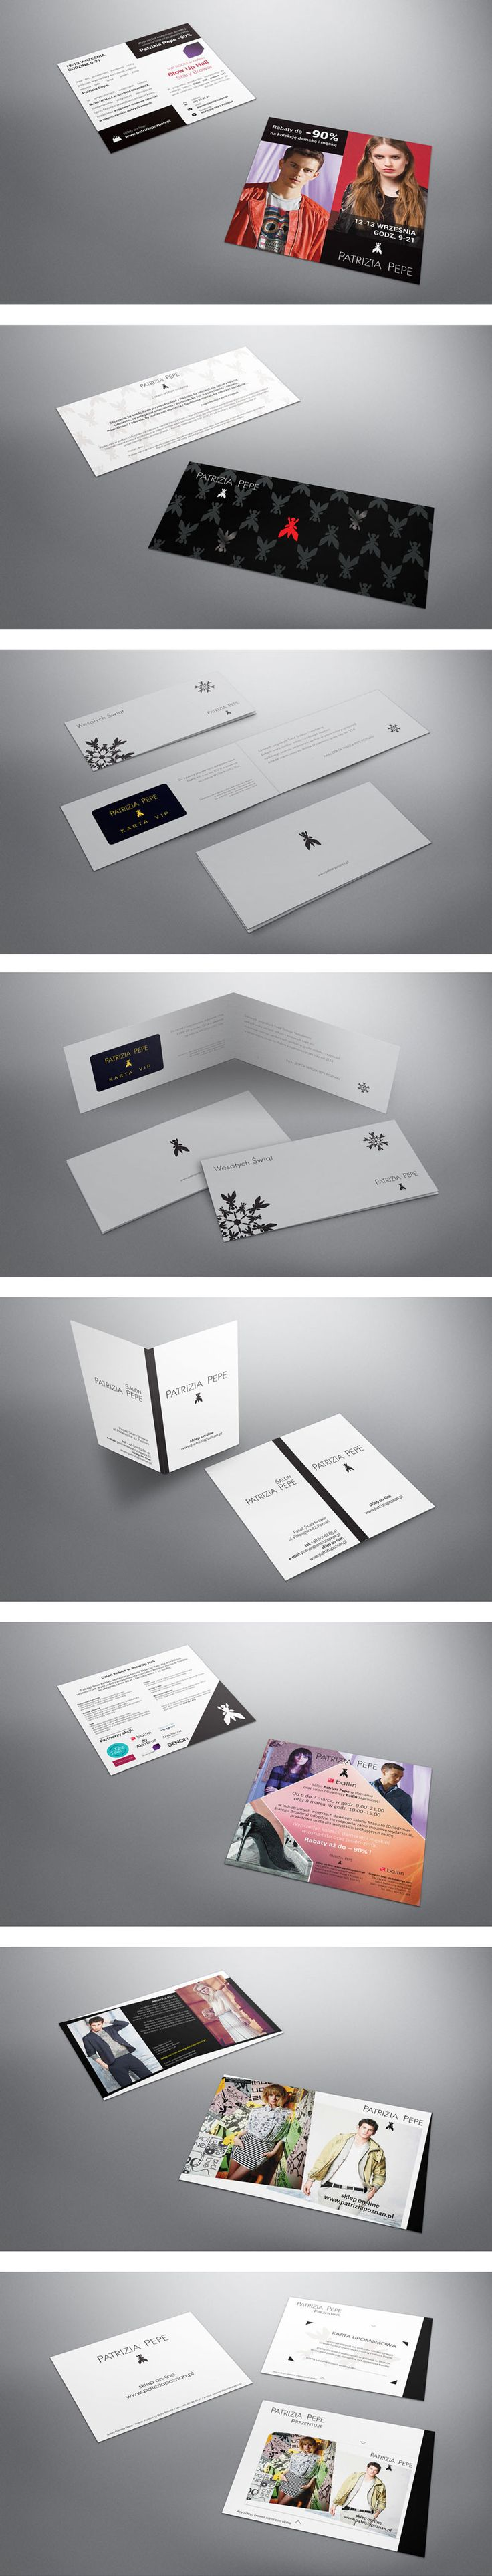 Graphic design for Patrizia Pepe. Project included several designs for print and web.